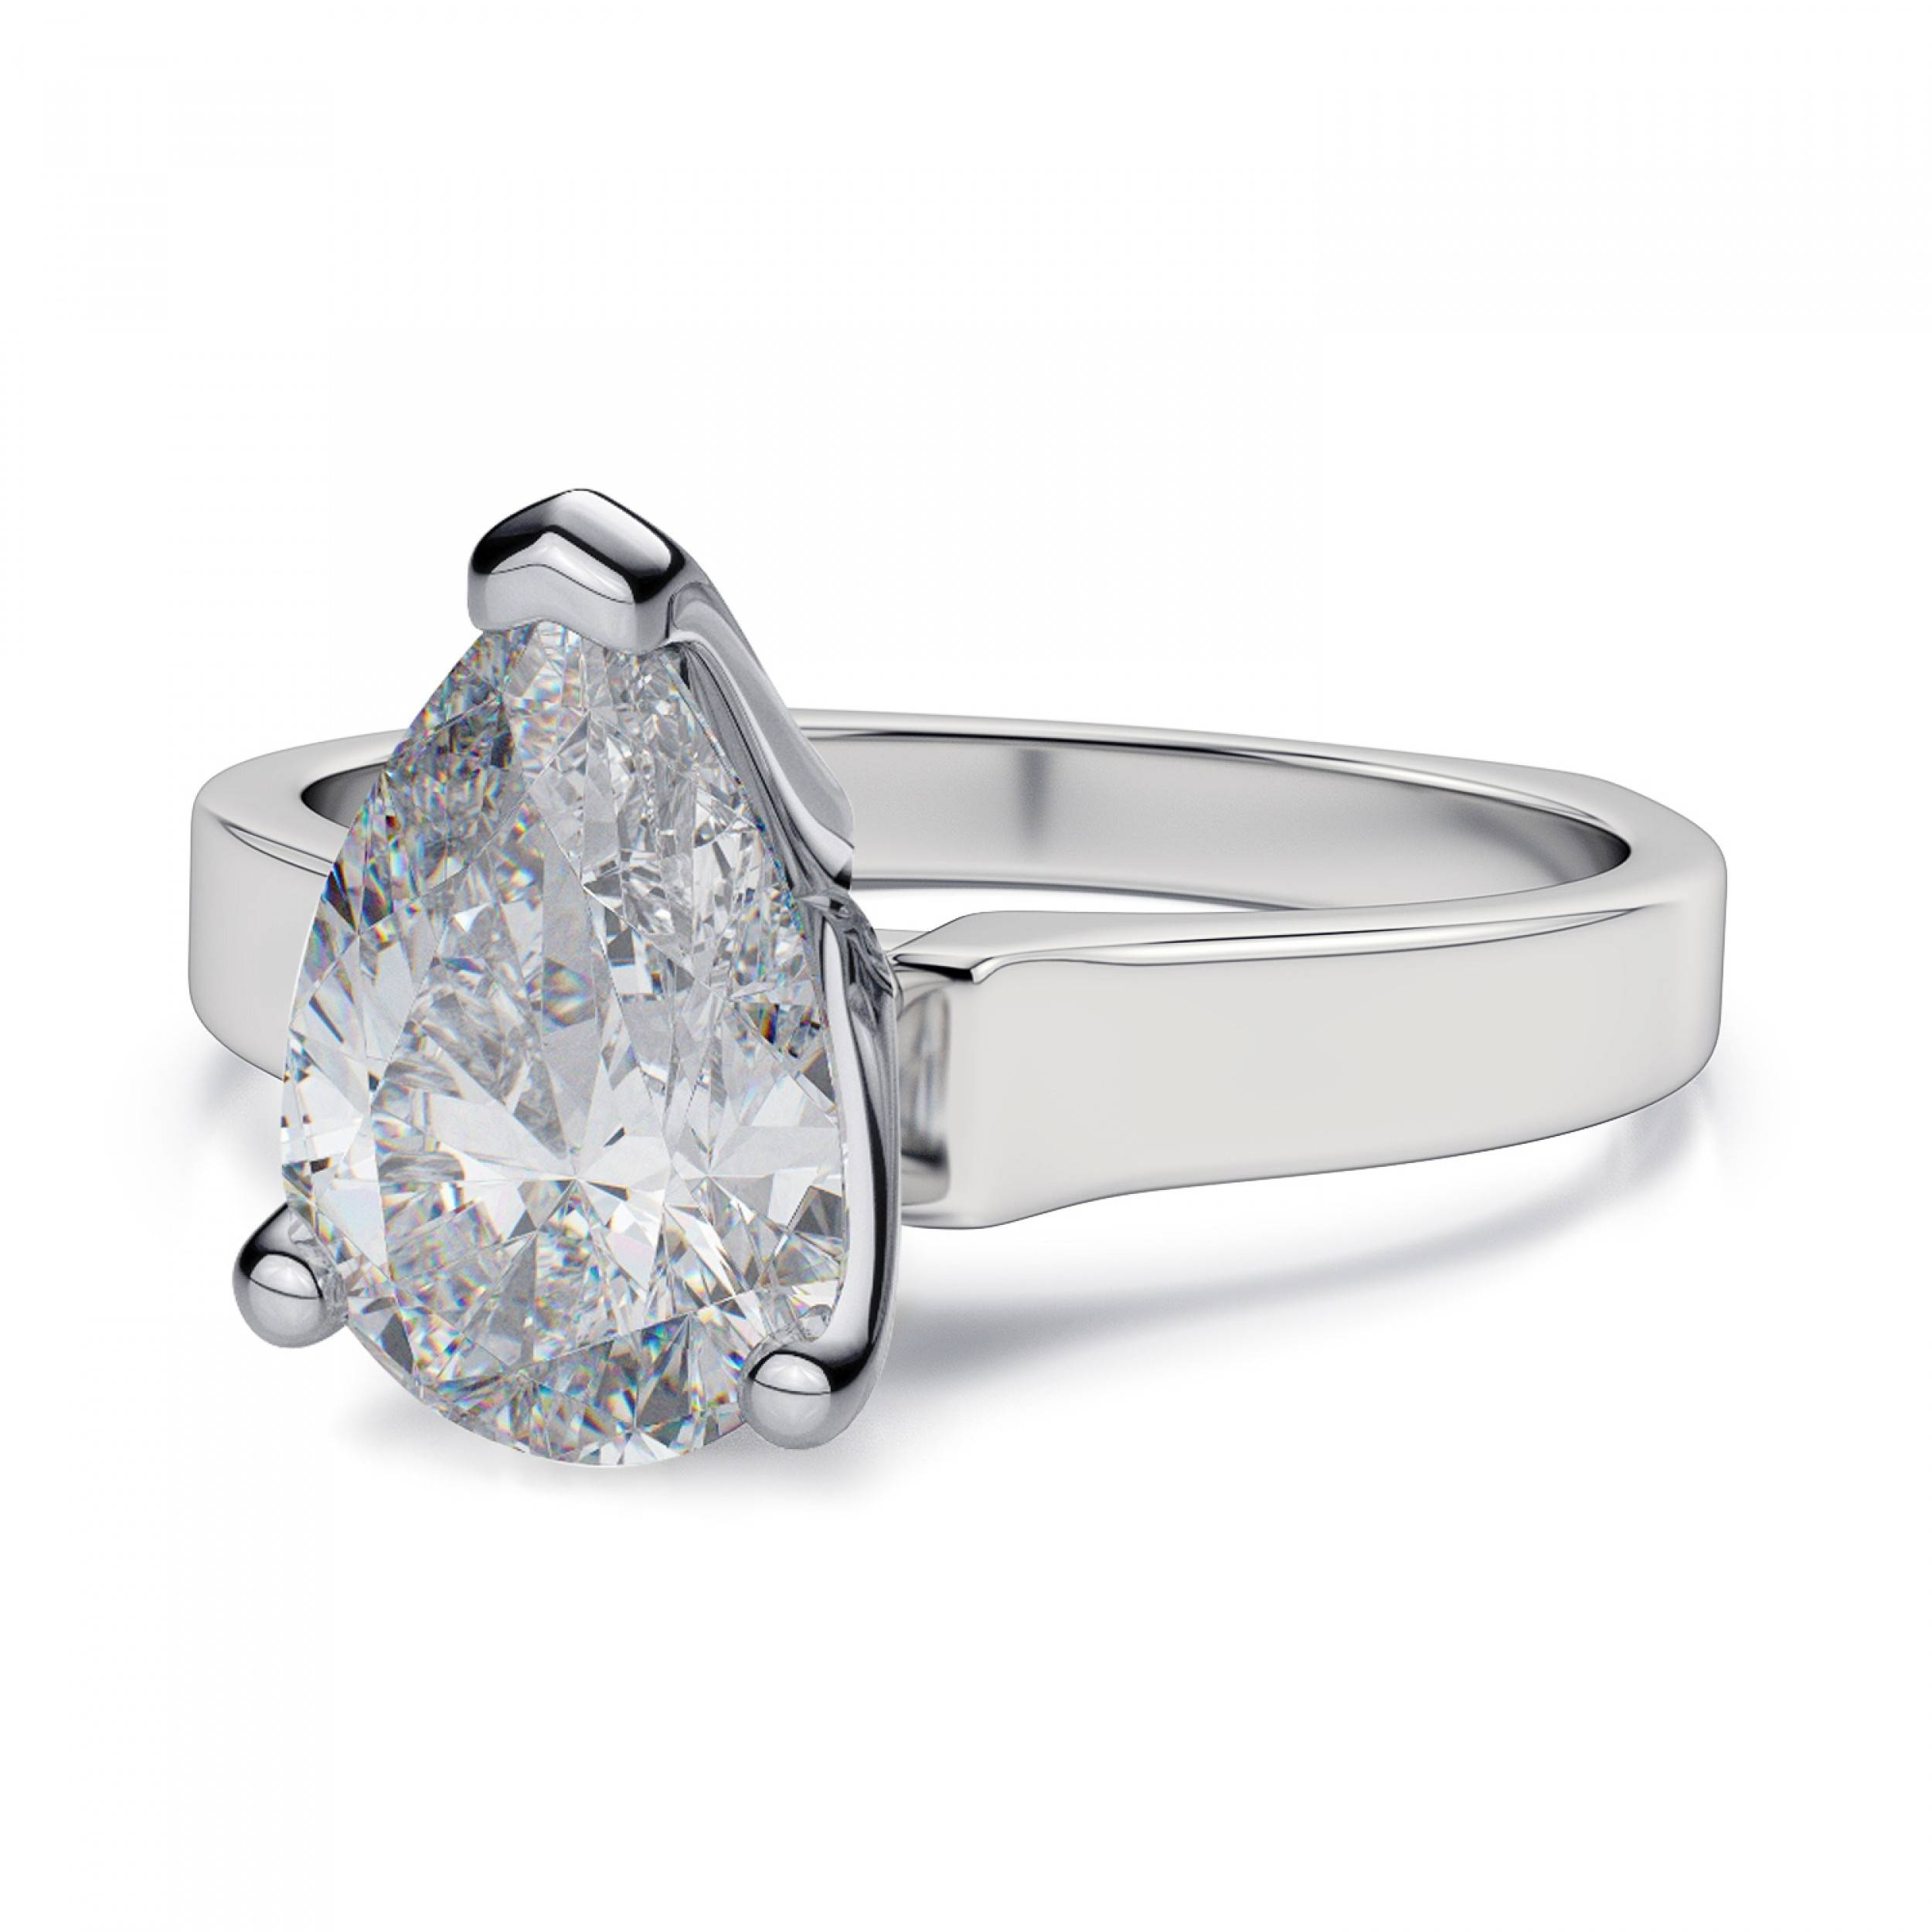 ring carat jewellery rings engagement of beautiful co tififi solitaire diamond with round settings best